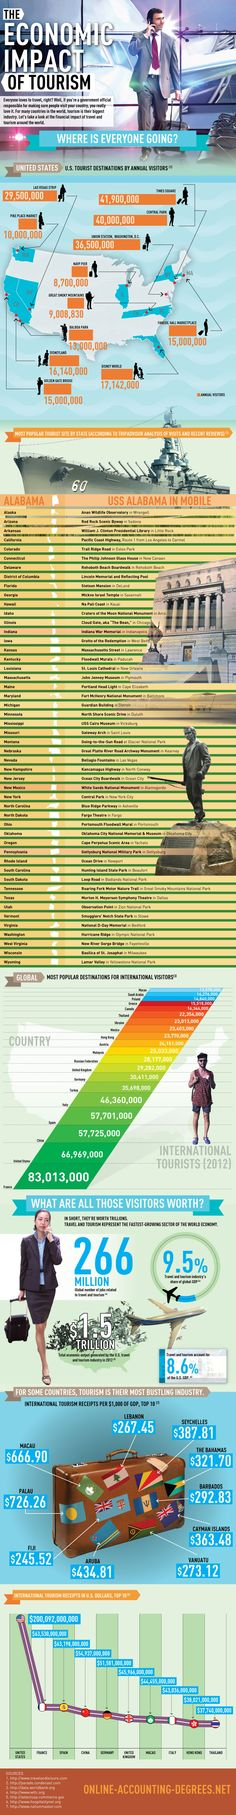 The Economic Impact of Tourism by Country, State [INFOGRAPHIC]